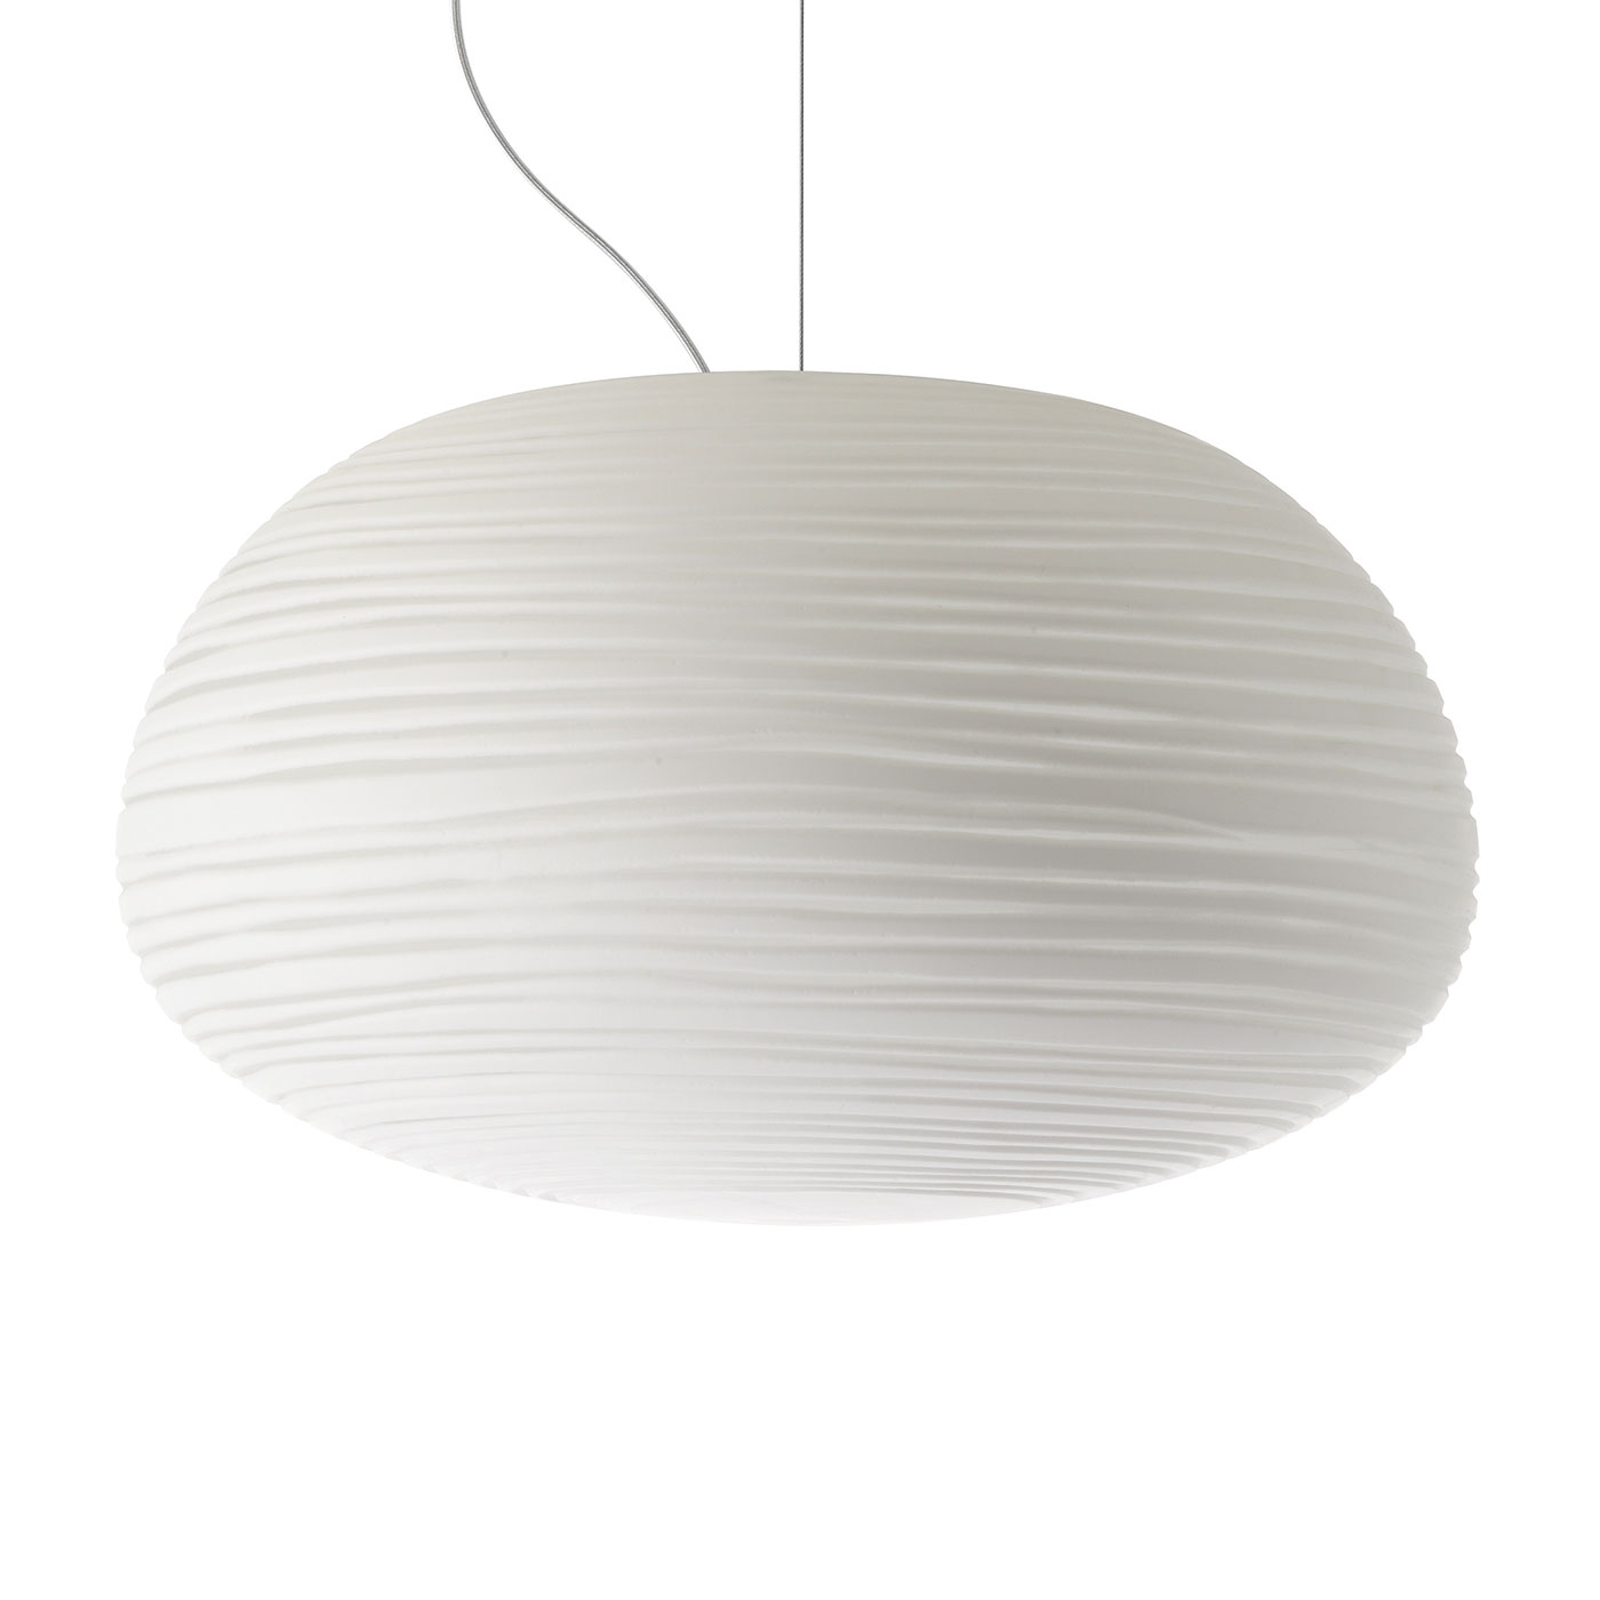 Foscarini MyLight Rituals 2 suspension LED